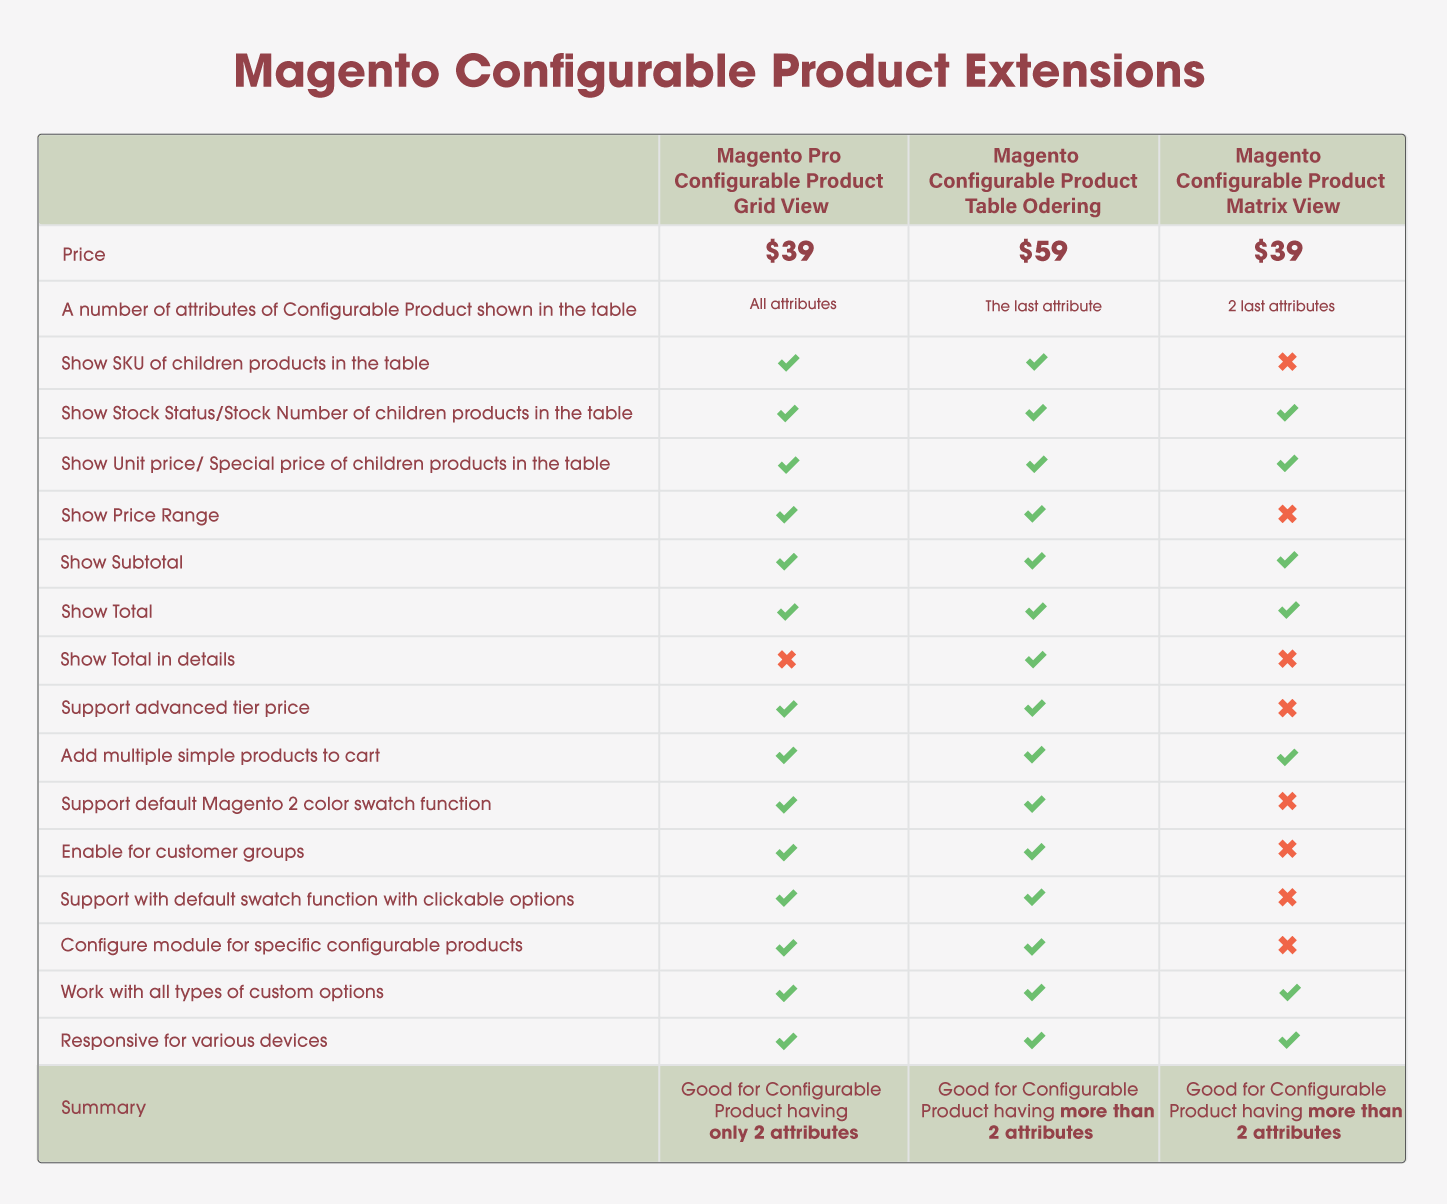 Magento Configurable Product Extensions